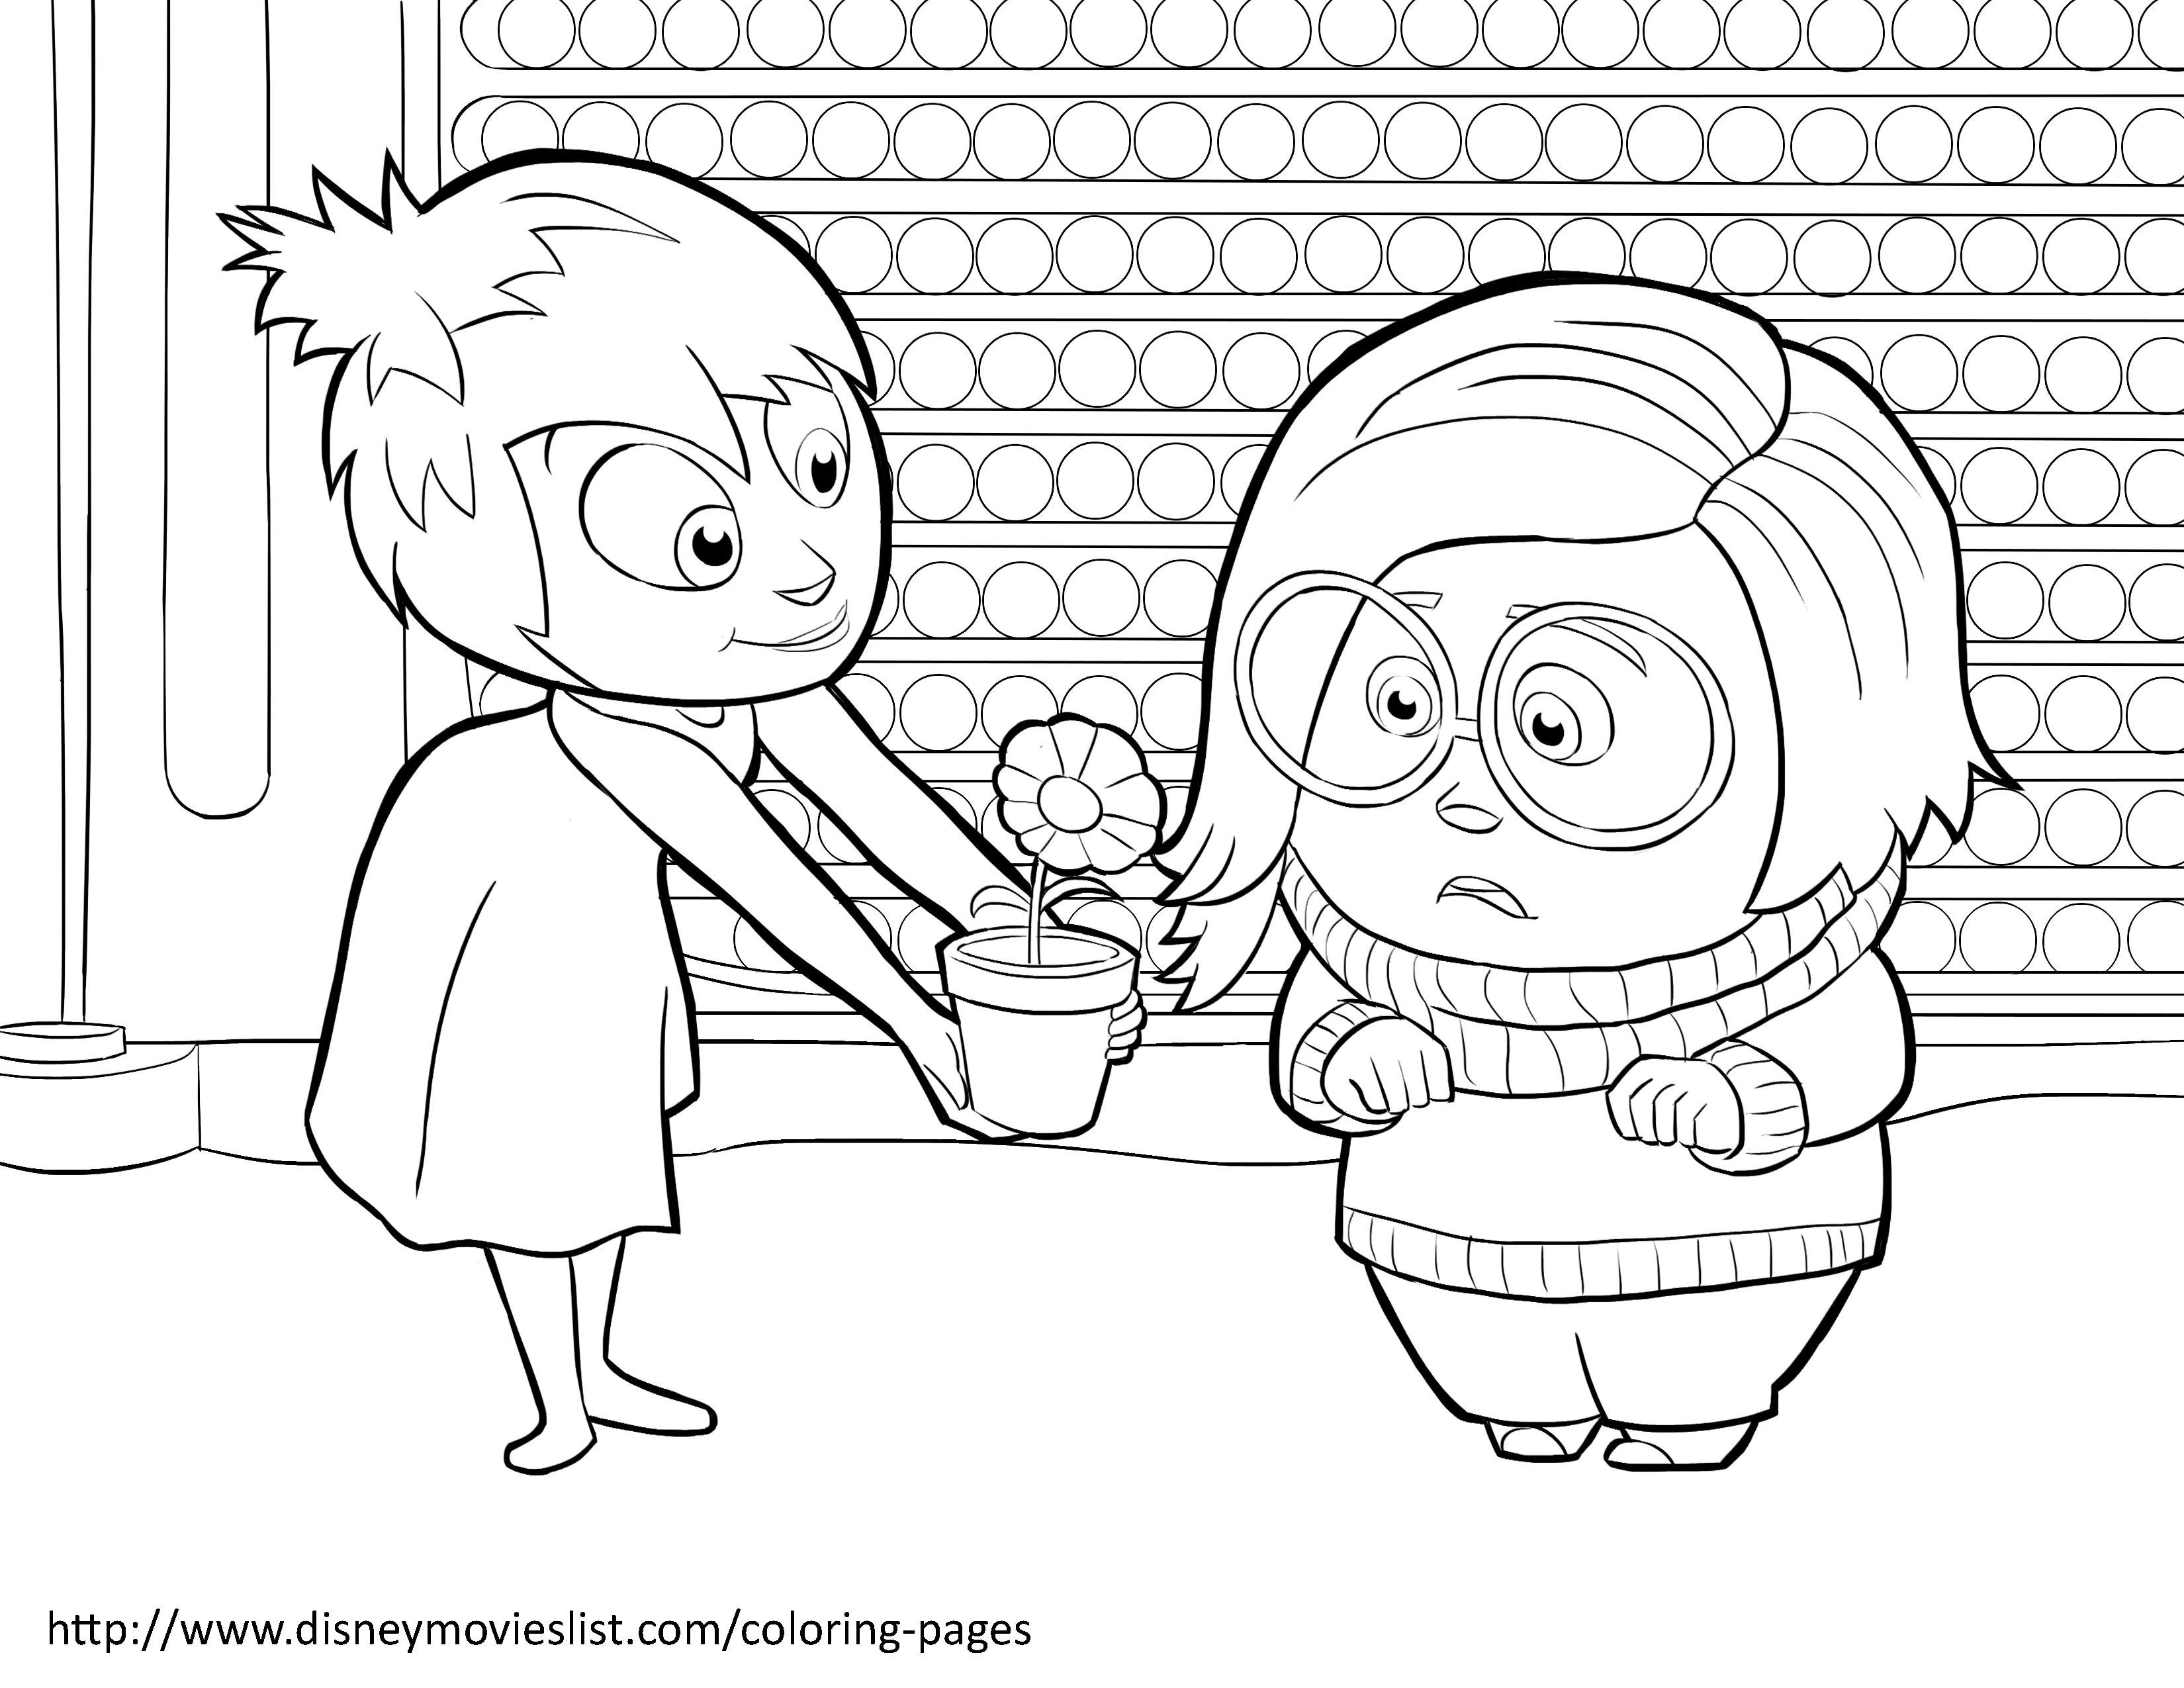 Disney S Inside Out Coloring Pages Sheet Free Disney